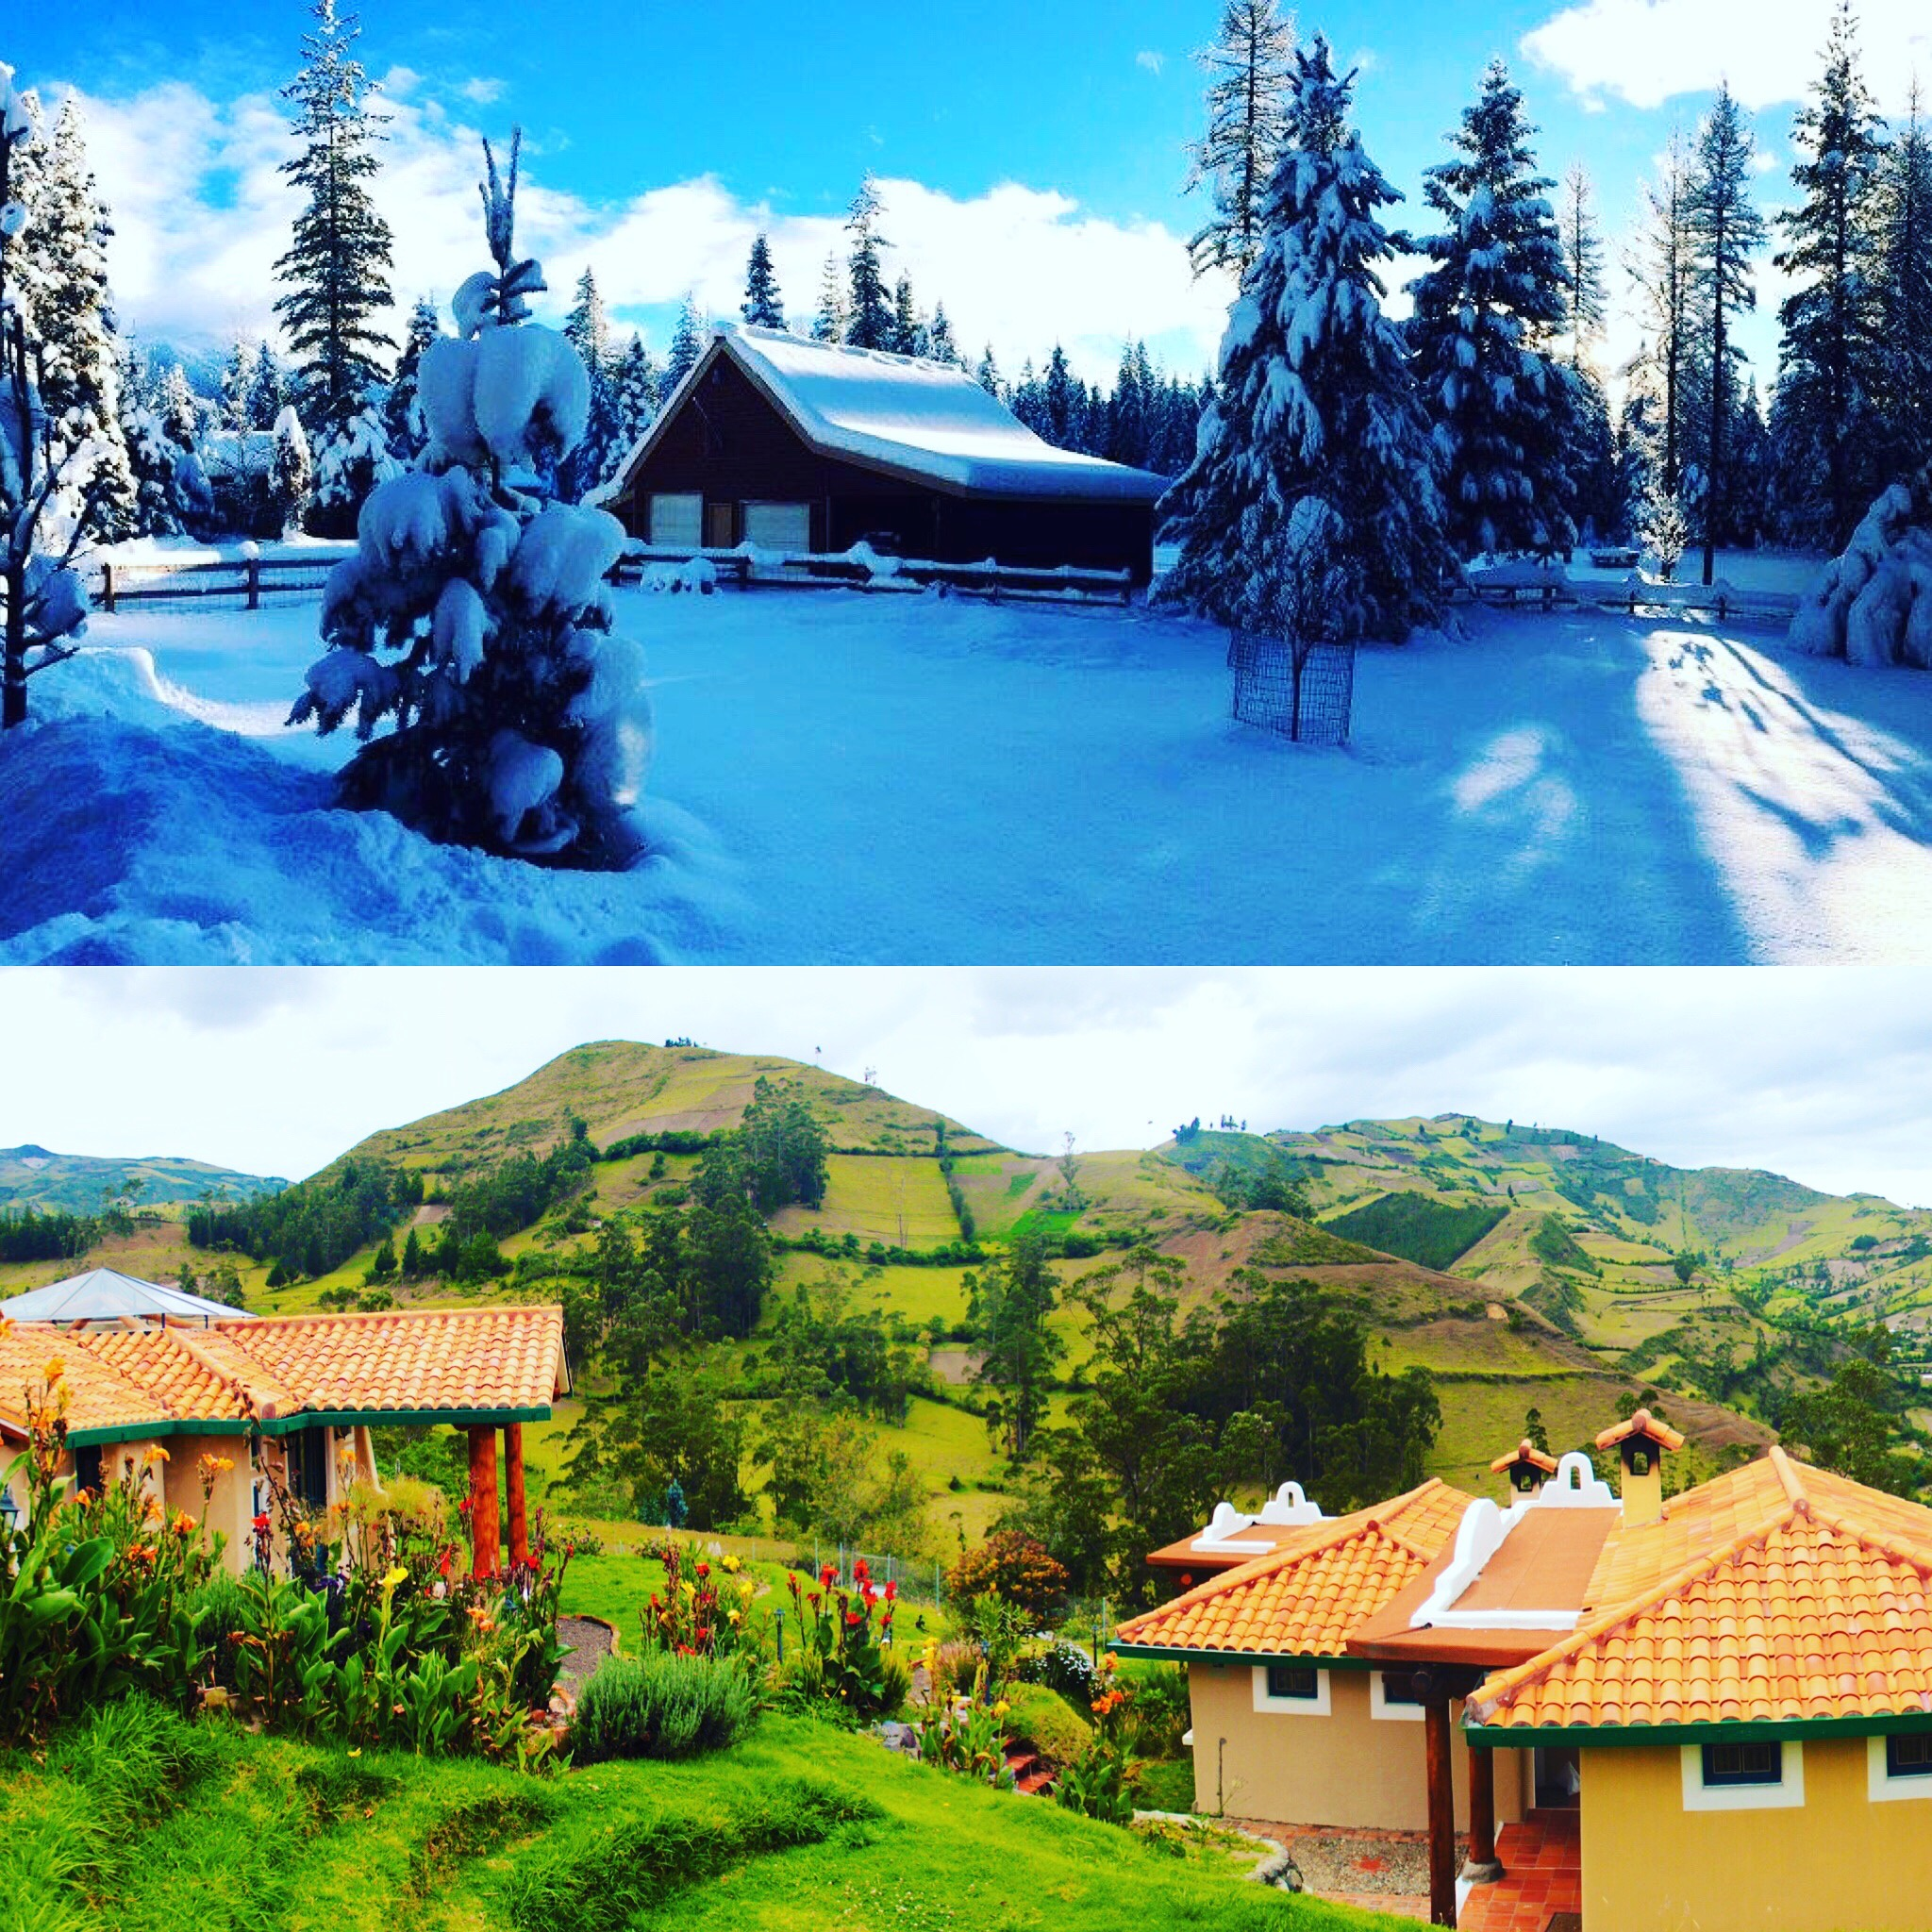 Christmas 2015 vs. Christmas 2016: Quite the difference in view.